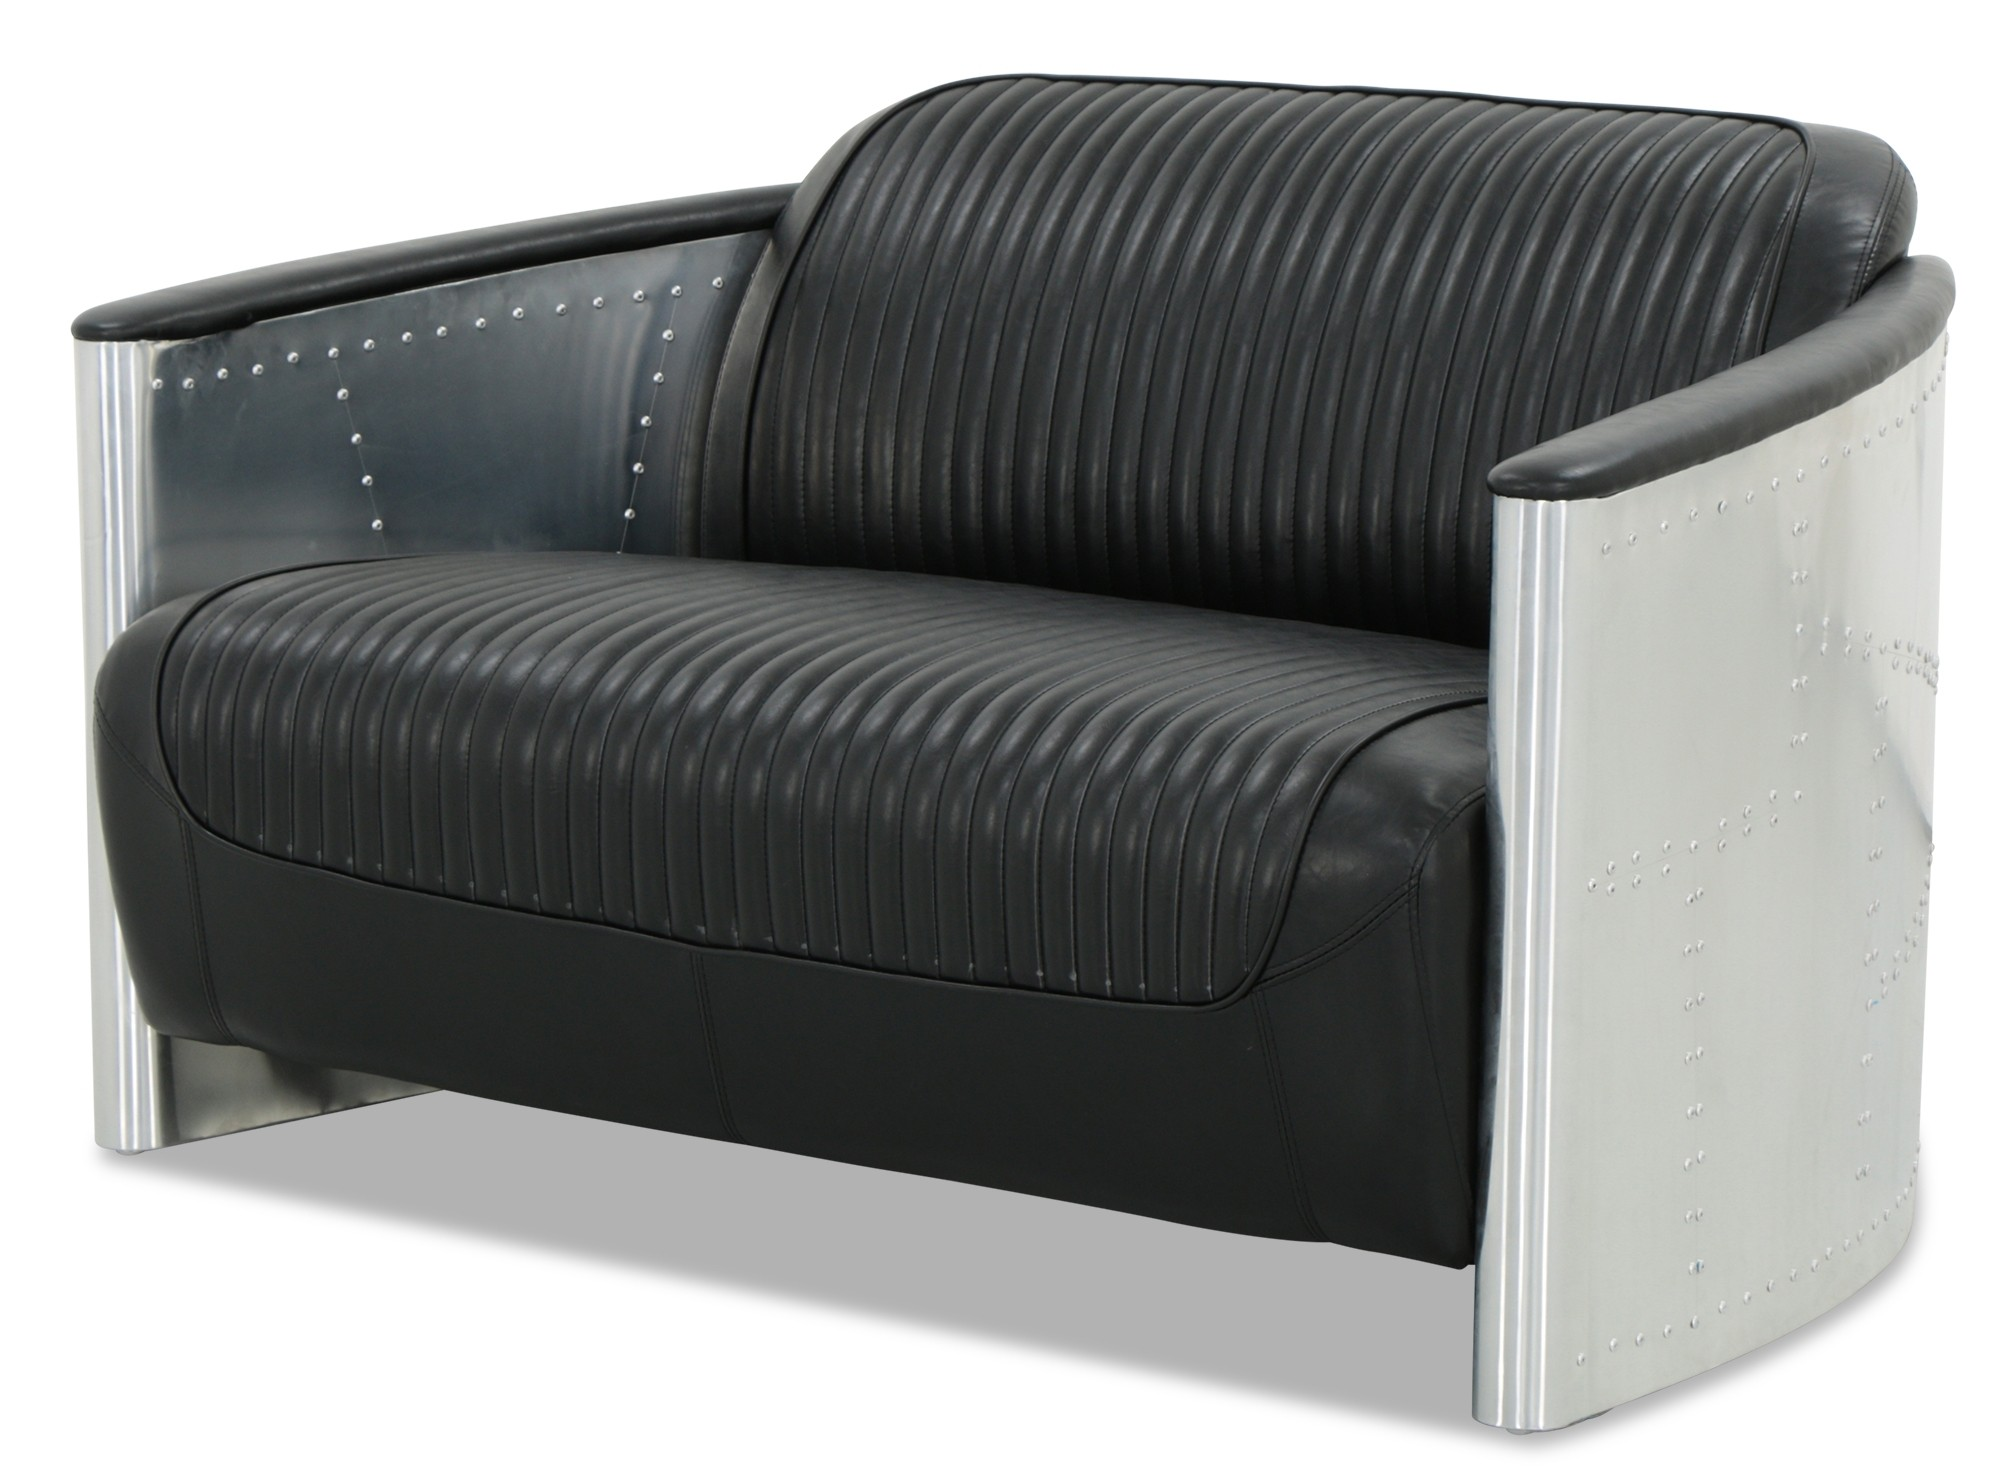 Designer replica 2 seater aviator sofa in black pu leather for Designer sofa replica